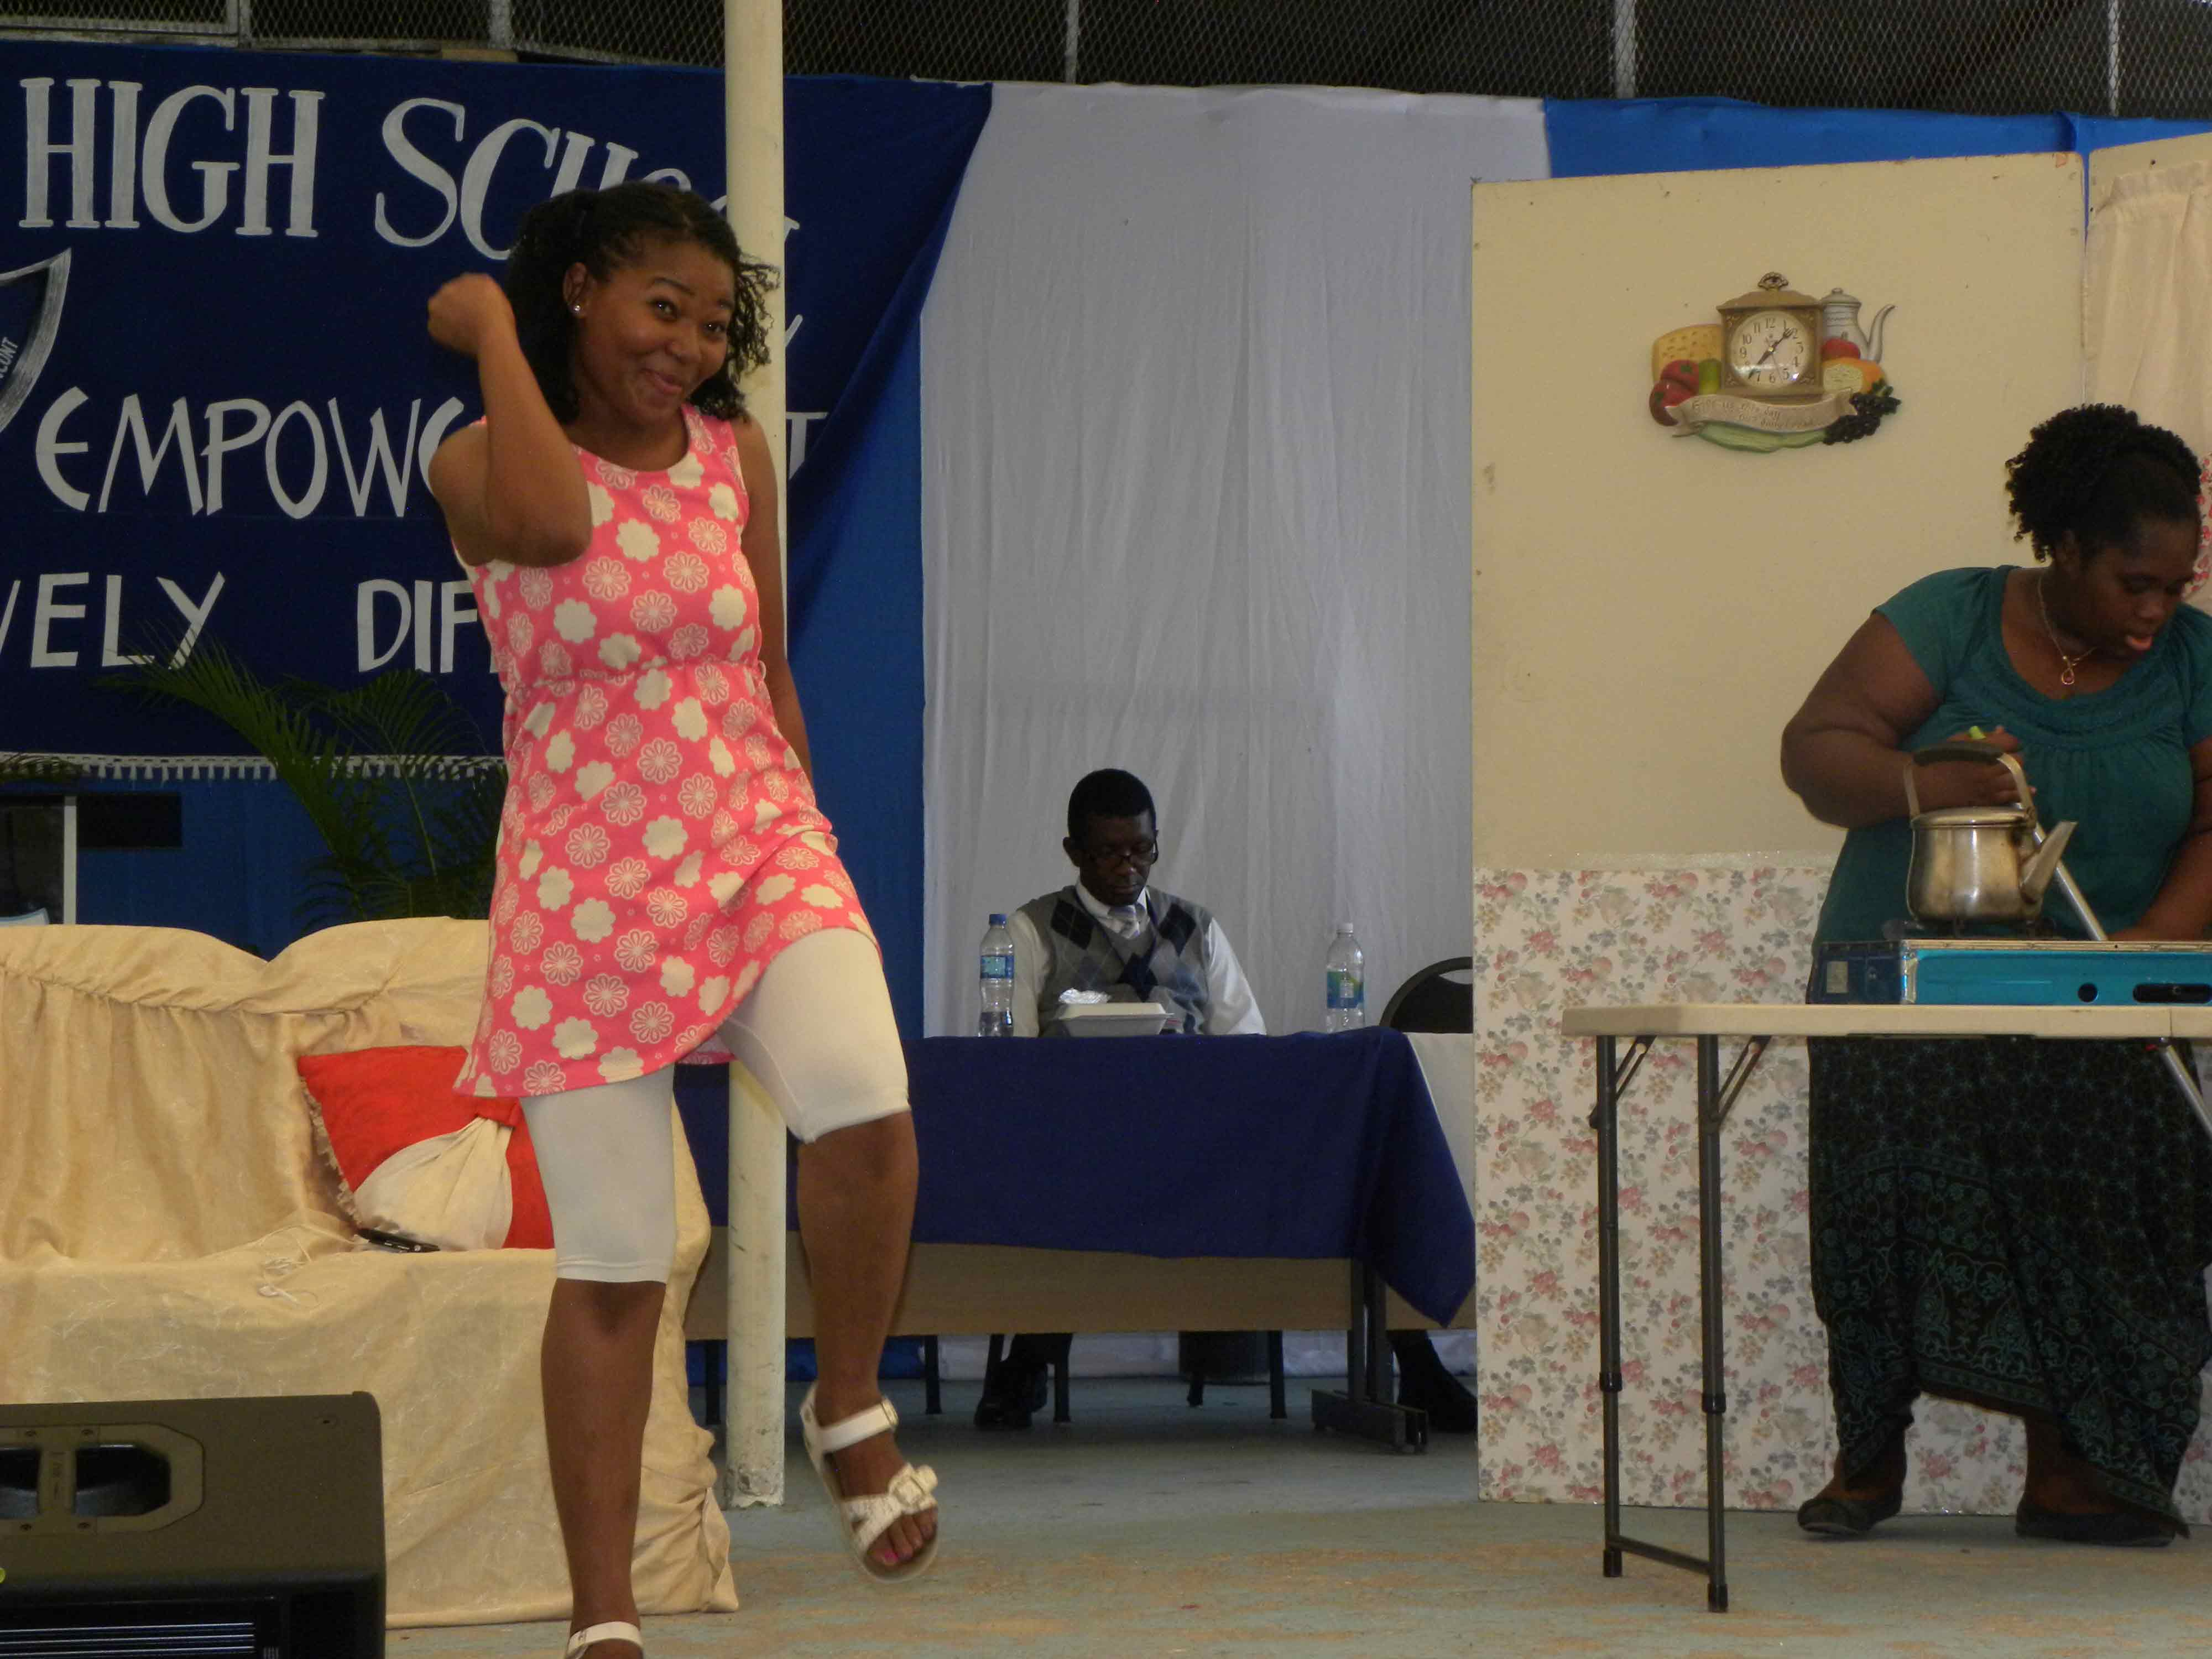 A scene from the play Ana